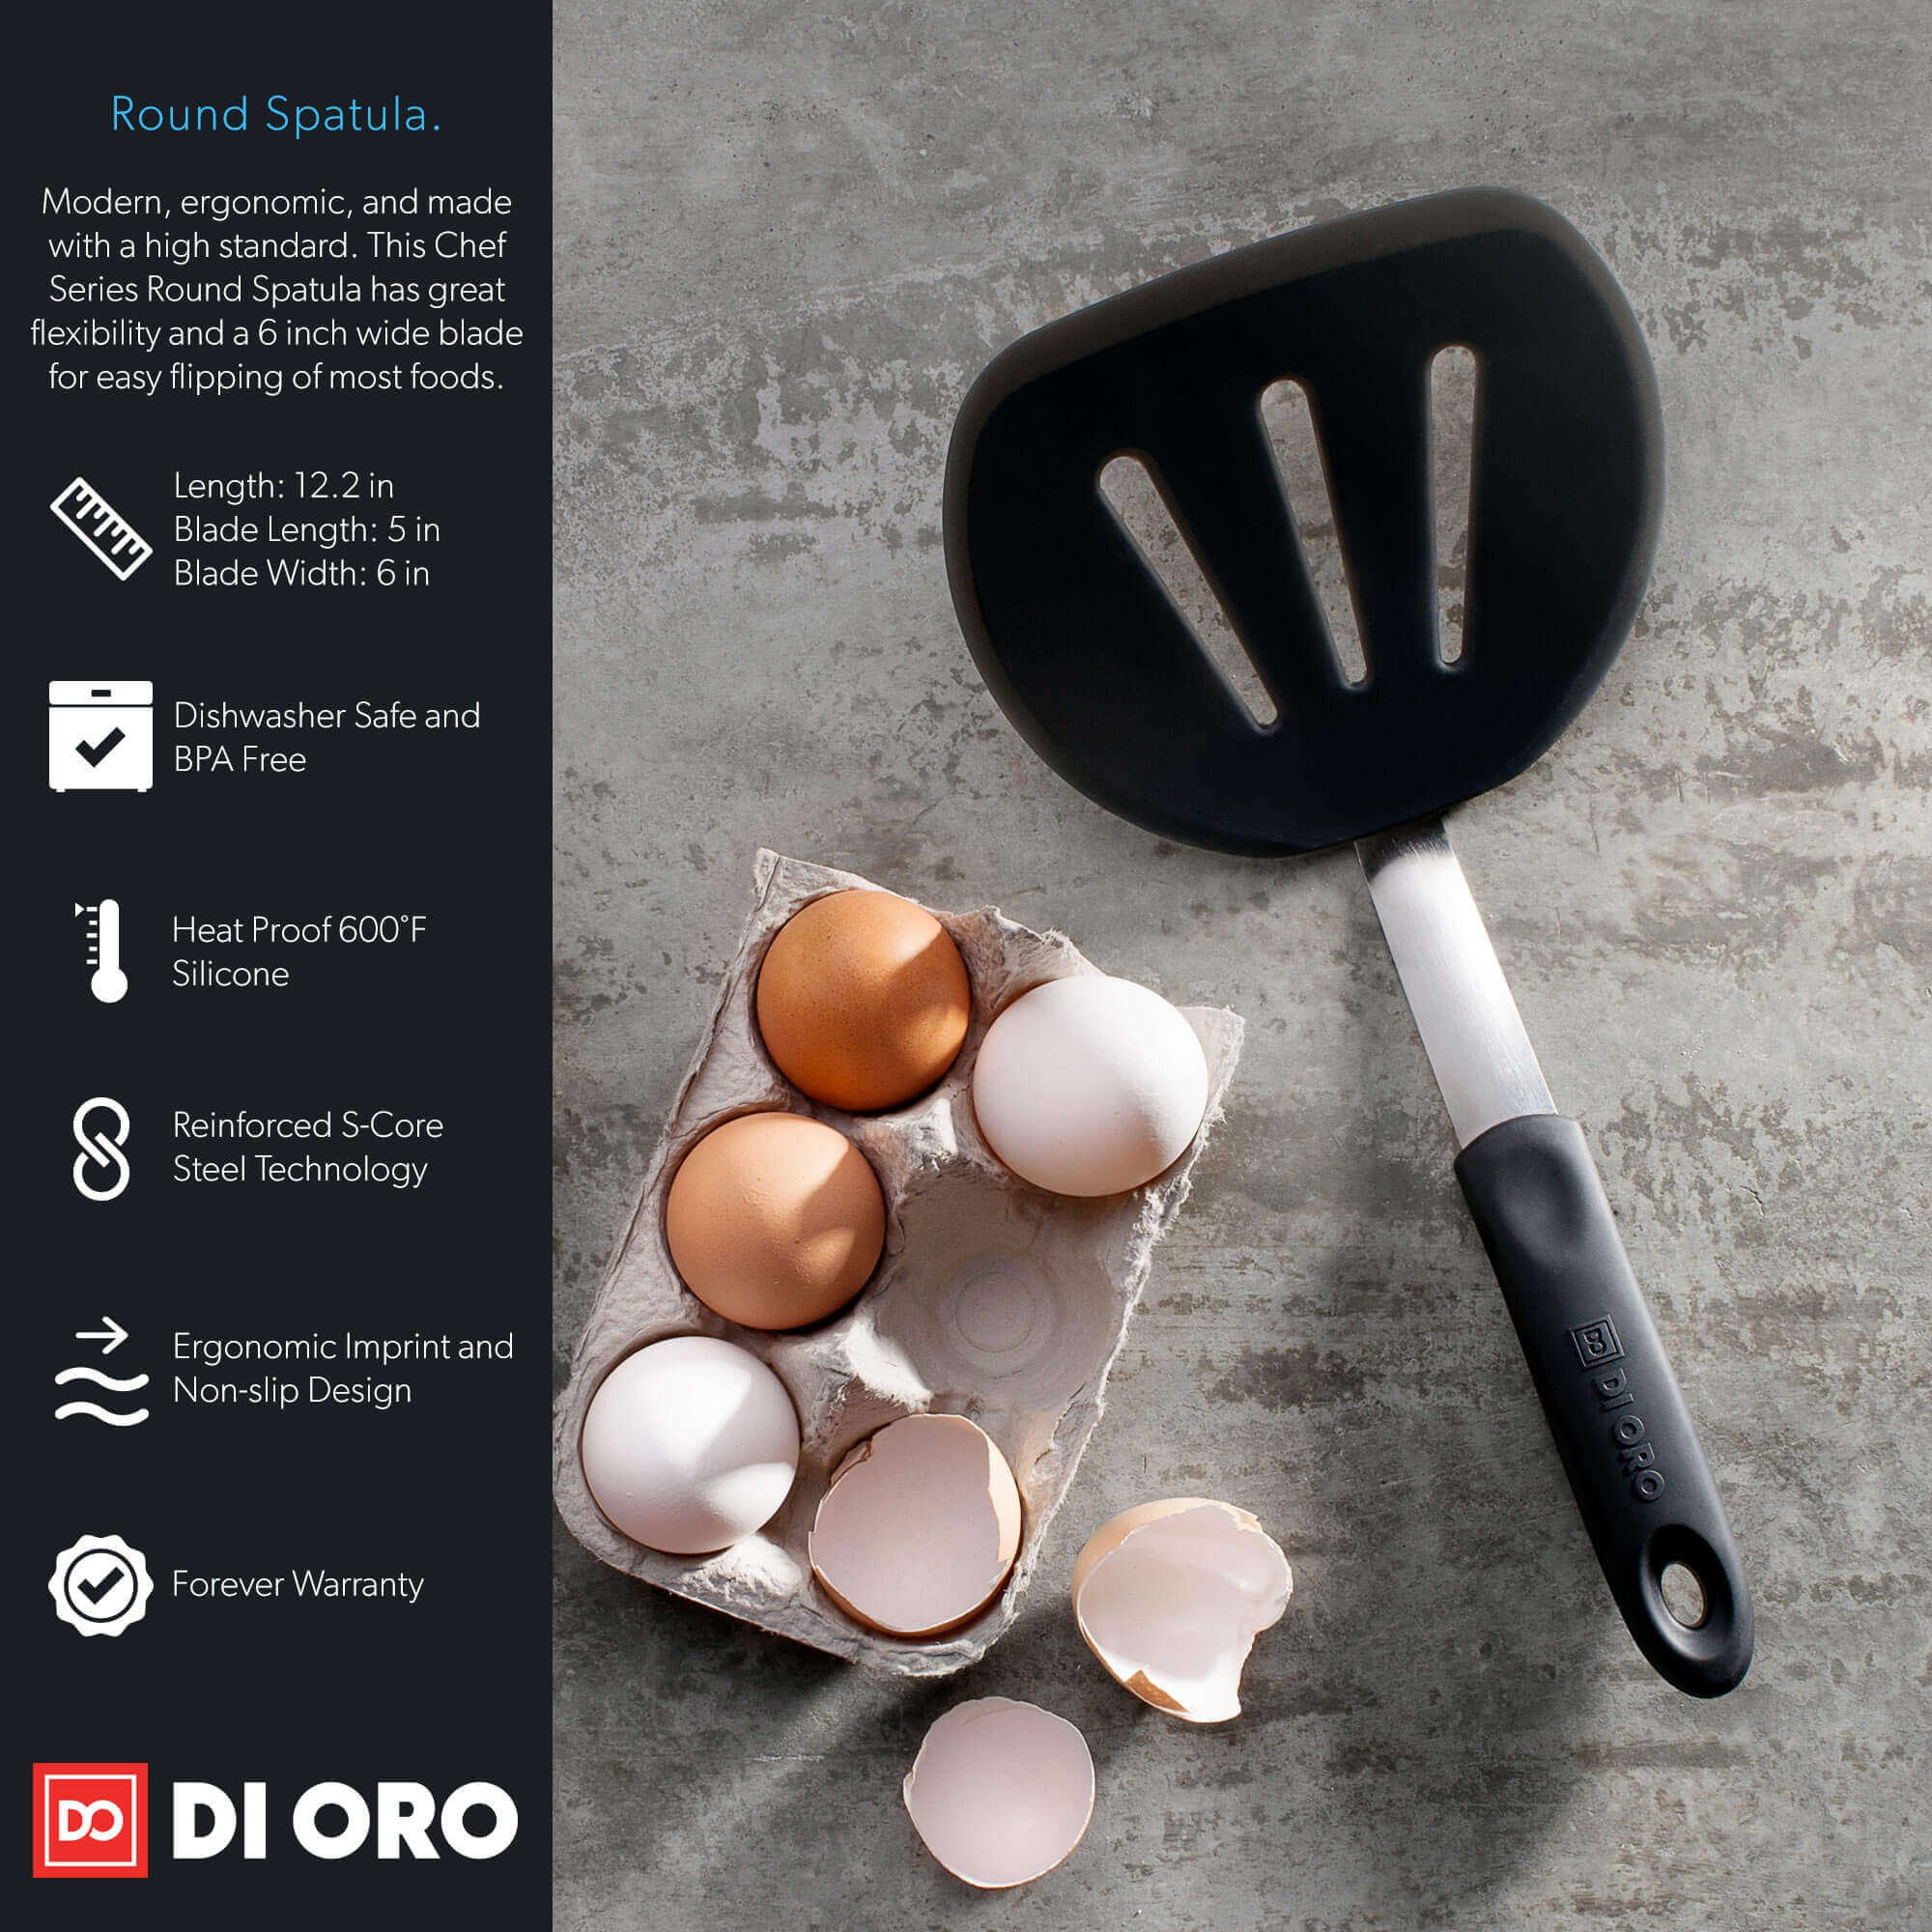 DI ORO Premium Chef Series Round Flexible Silicone Turner Spatula – The Perfect Pancake Flipper, Egg Turner, and Omelet Spatula - 600ºF Heat Resistant Rubber Spatula – Wide to Easily Handle Large Food by di Oro Living (Image #3)